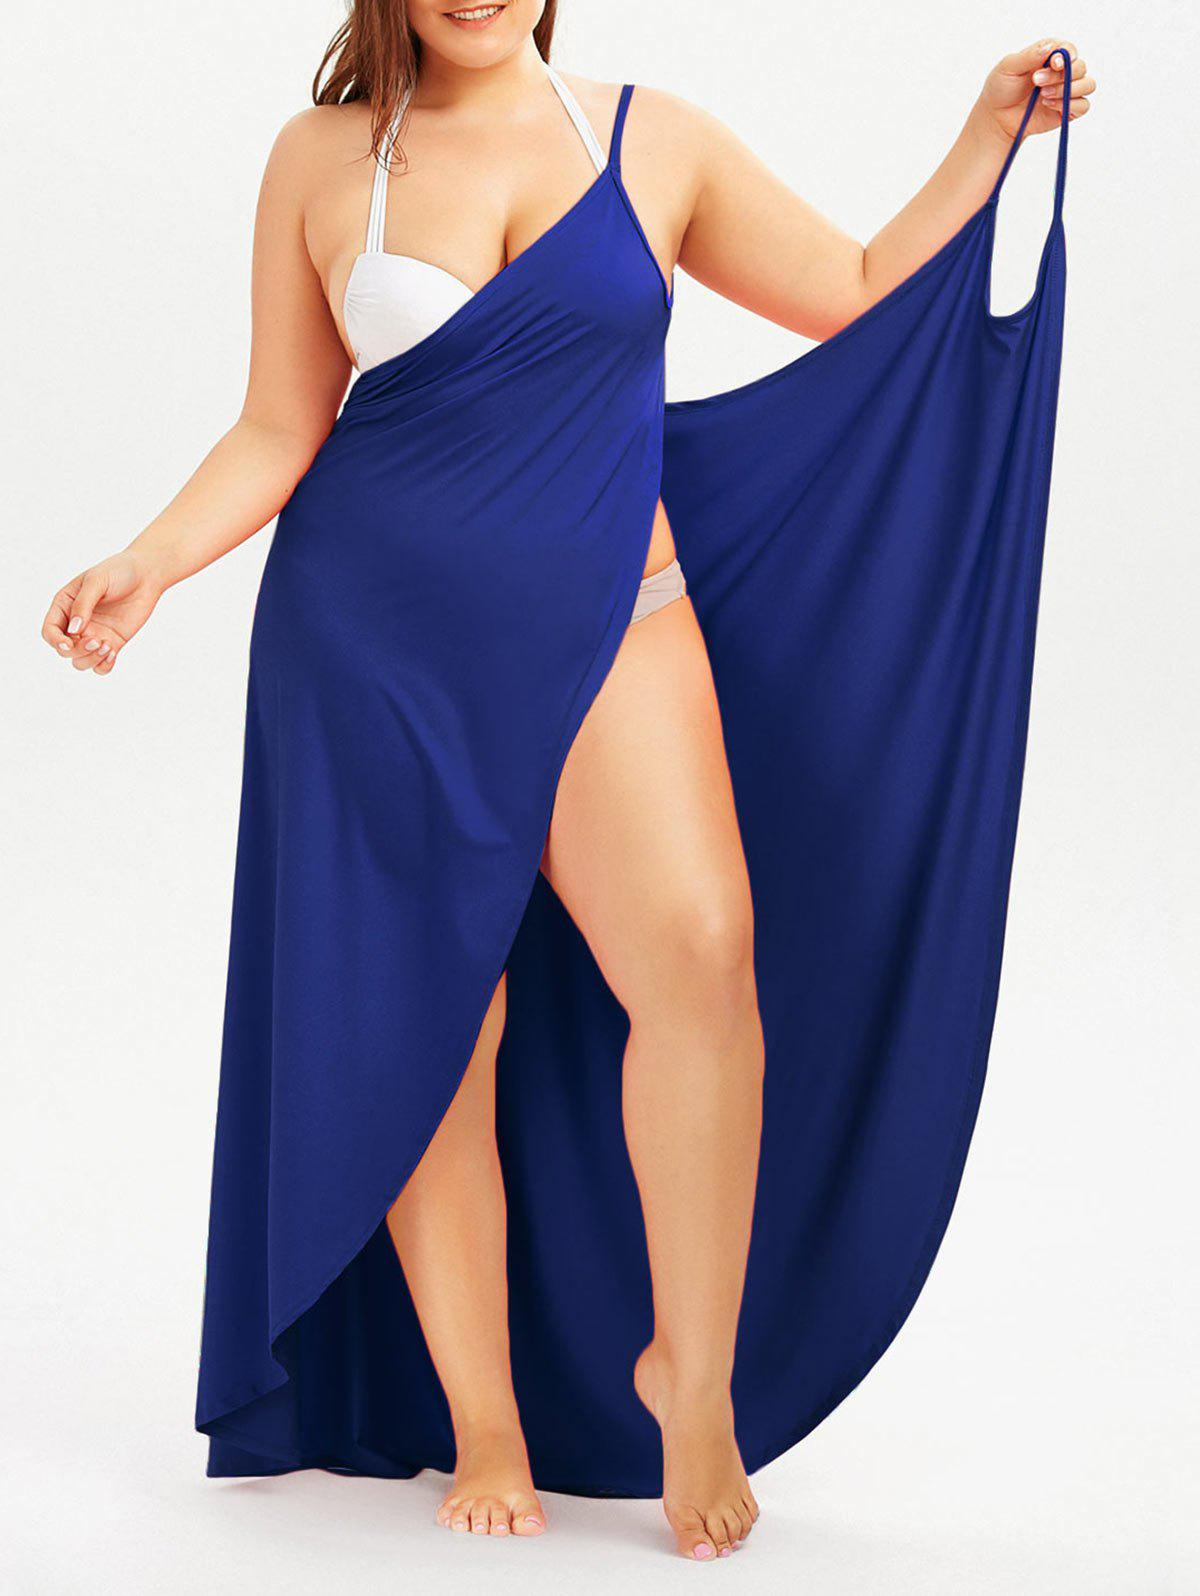 Plus Size Cover Up Beach Wrap DressWOMEN<br><br>Size: 5XL; Color: ROYAL; Style: Casual; Material: Polyester,Spandex; Silhouette: Beach; Dresses Length: Floor-Length; Neckline: Spaghetti Strap; Sleeve Length: Sleeveless; Waist: Natural; Pattern Type: Solid Color; Elasticity: Elastic; With Belt: No; Season: Summer; Weight: 0.4100kg; Package Contents: 1 x Dress;